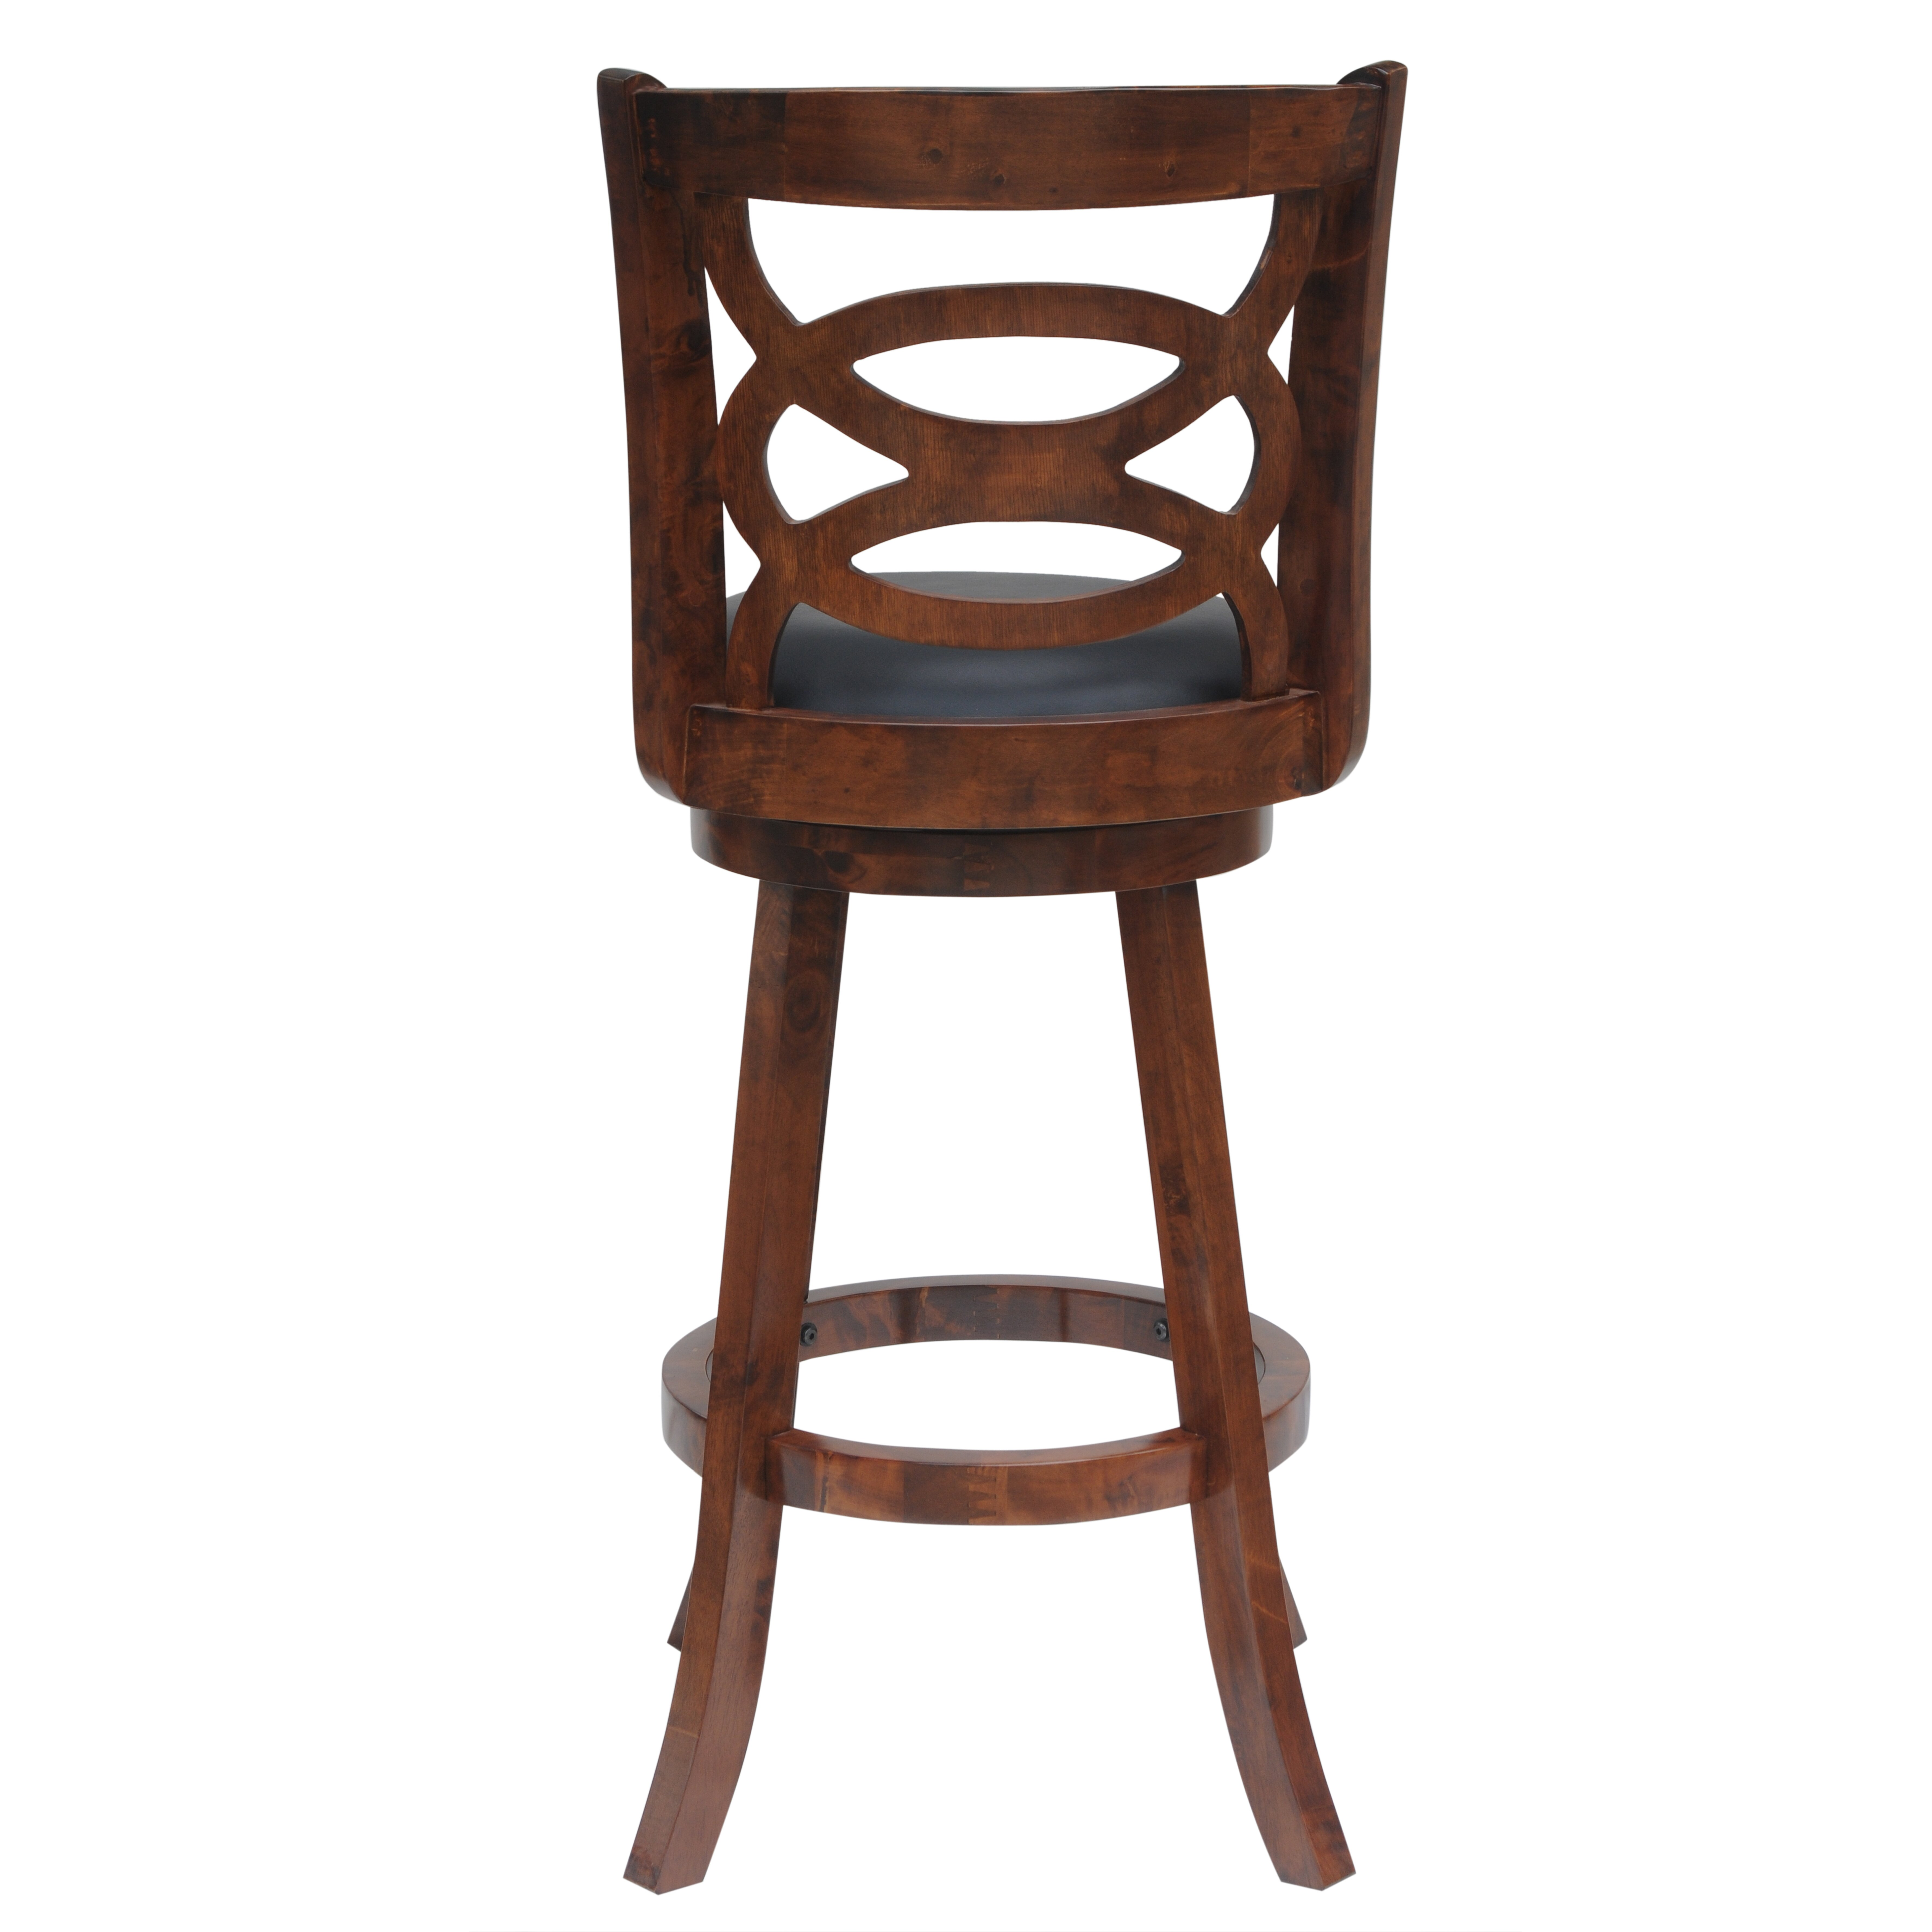 Boraam Seina 24quot Swivel Bar Stool amp Reviews Wayfair : Boraam Industries Inc Seina 24 Swivel Bar Stool with Cushion BAA1743 from www.wayfair.com size 7113 x 7113 jpeg 2167kB